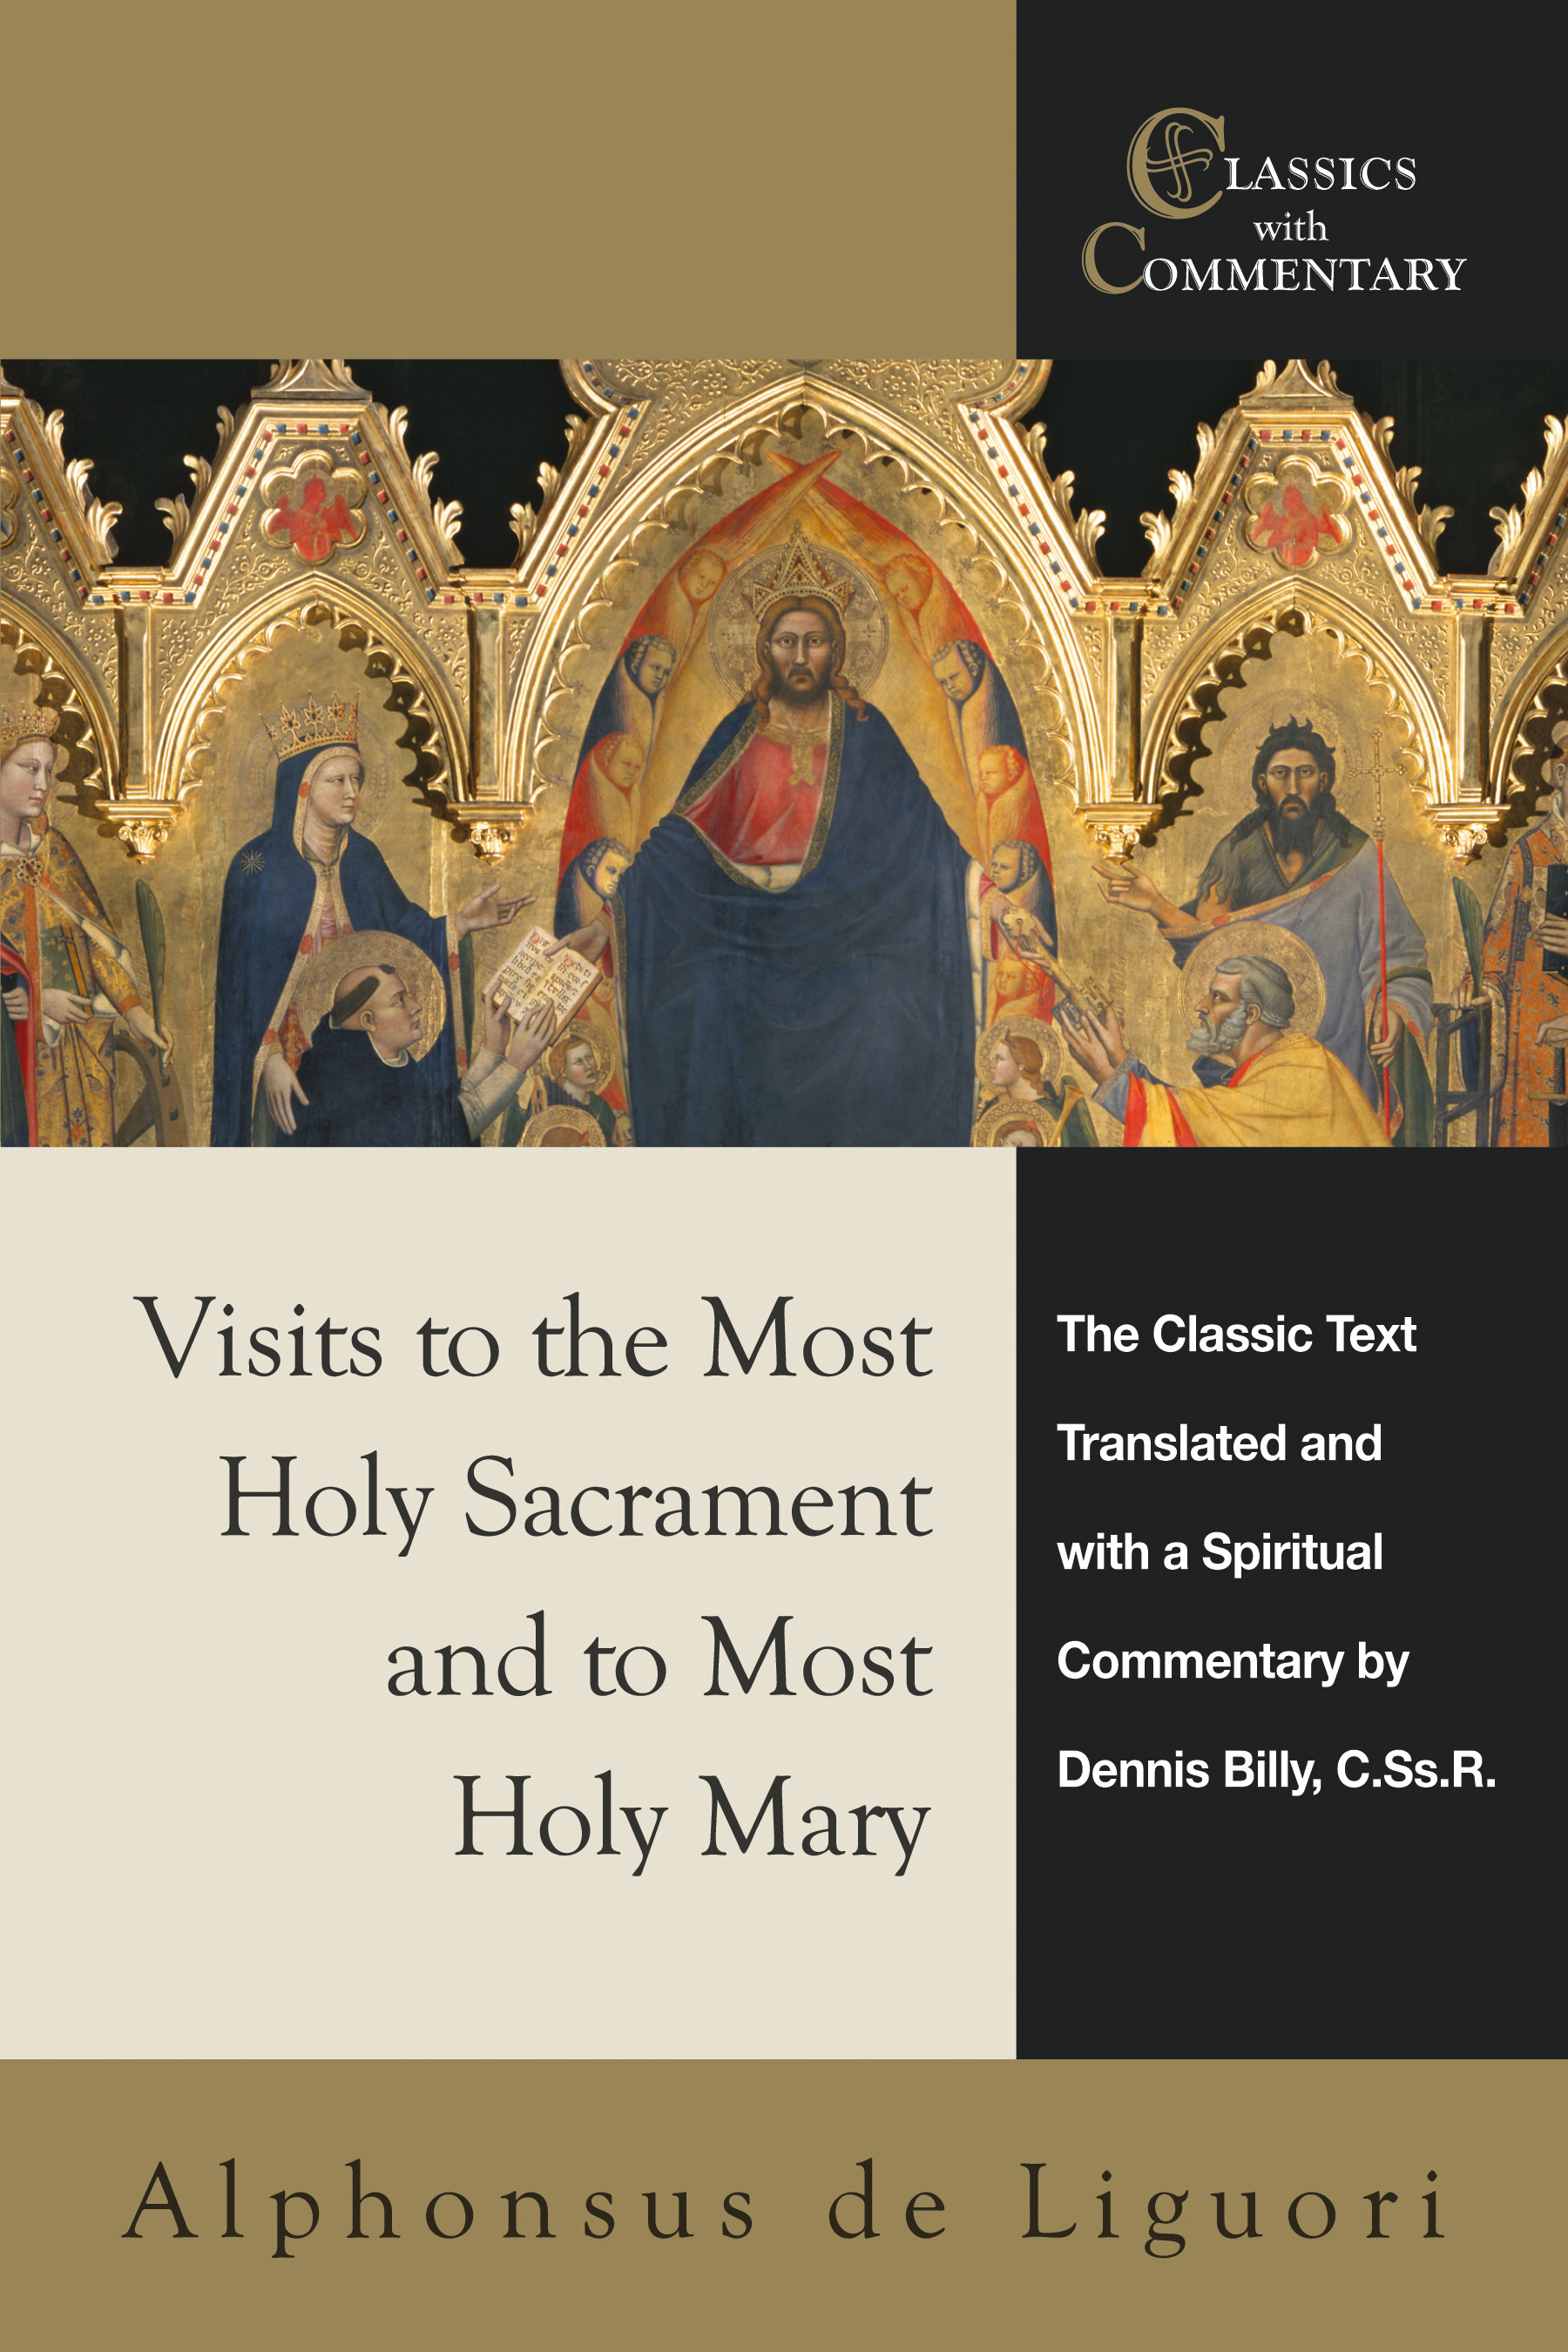 Visits to the Most Holy Sacrament and to Most Holy Mary